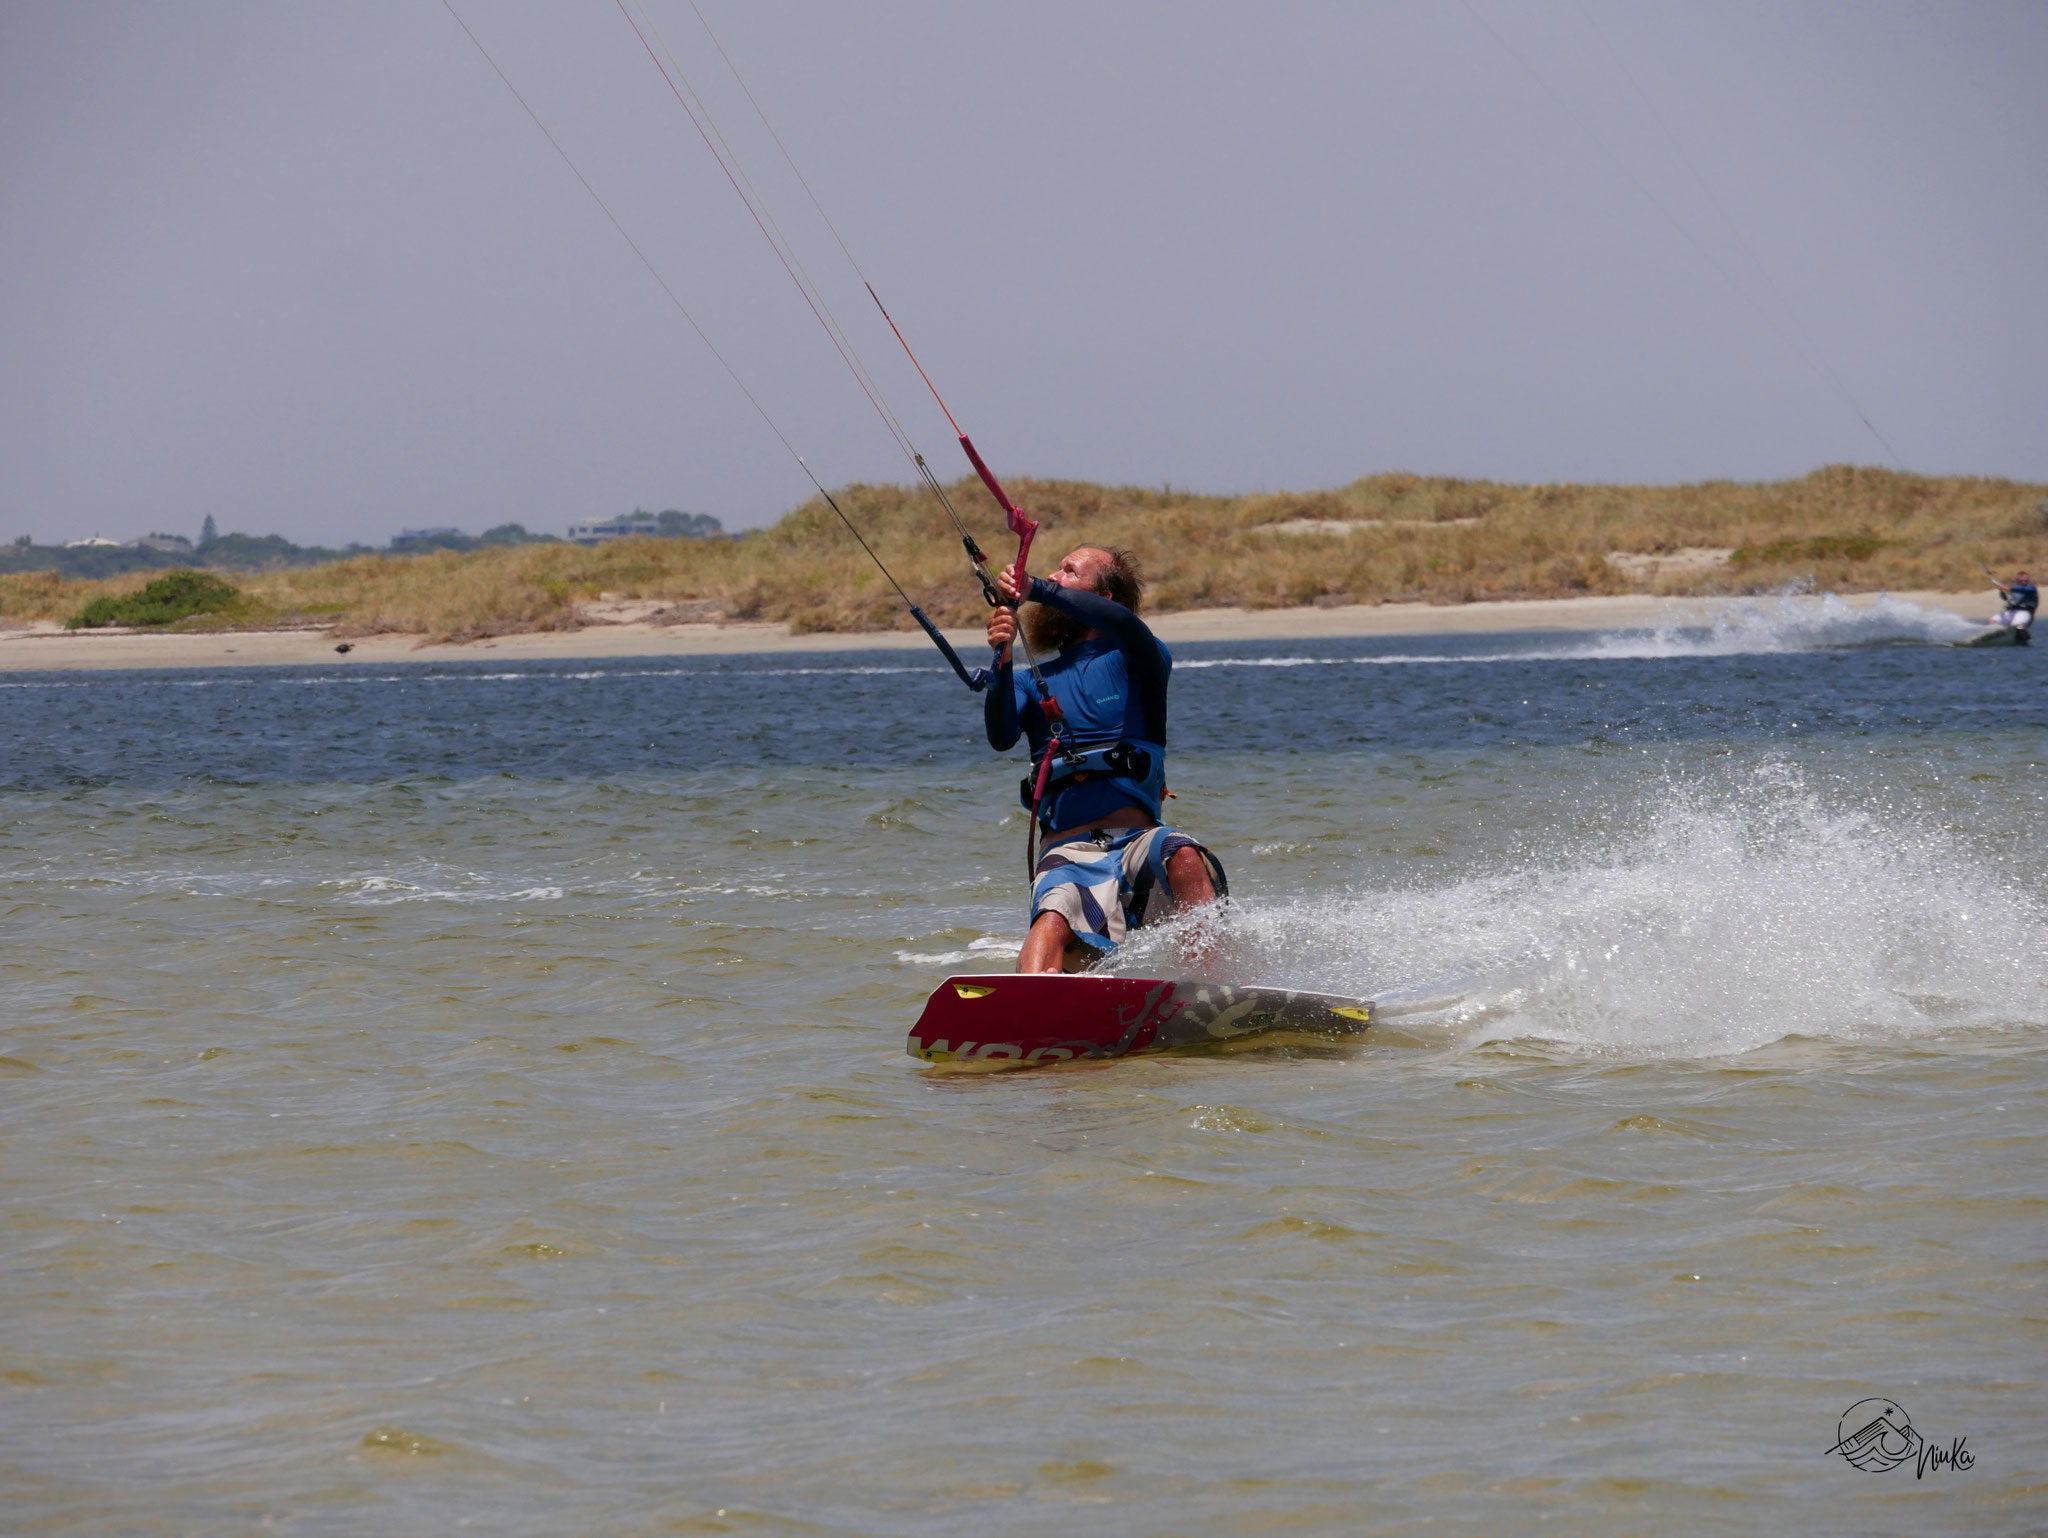 Kitesurfen in Safety Bay